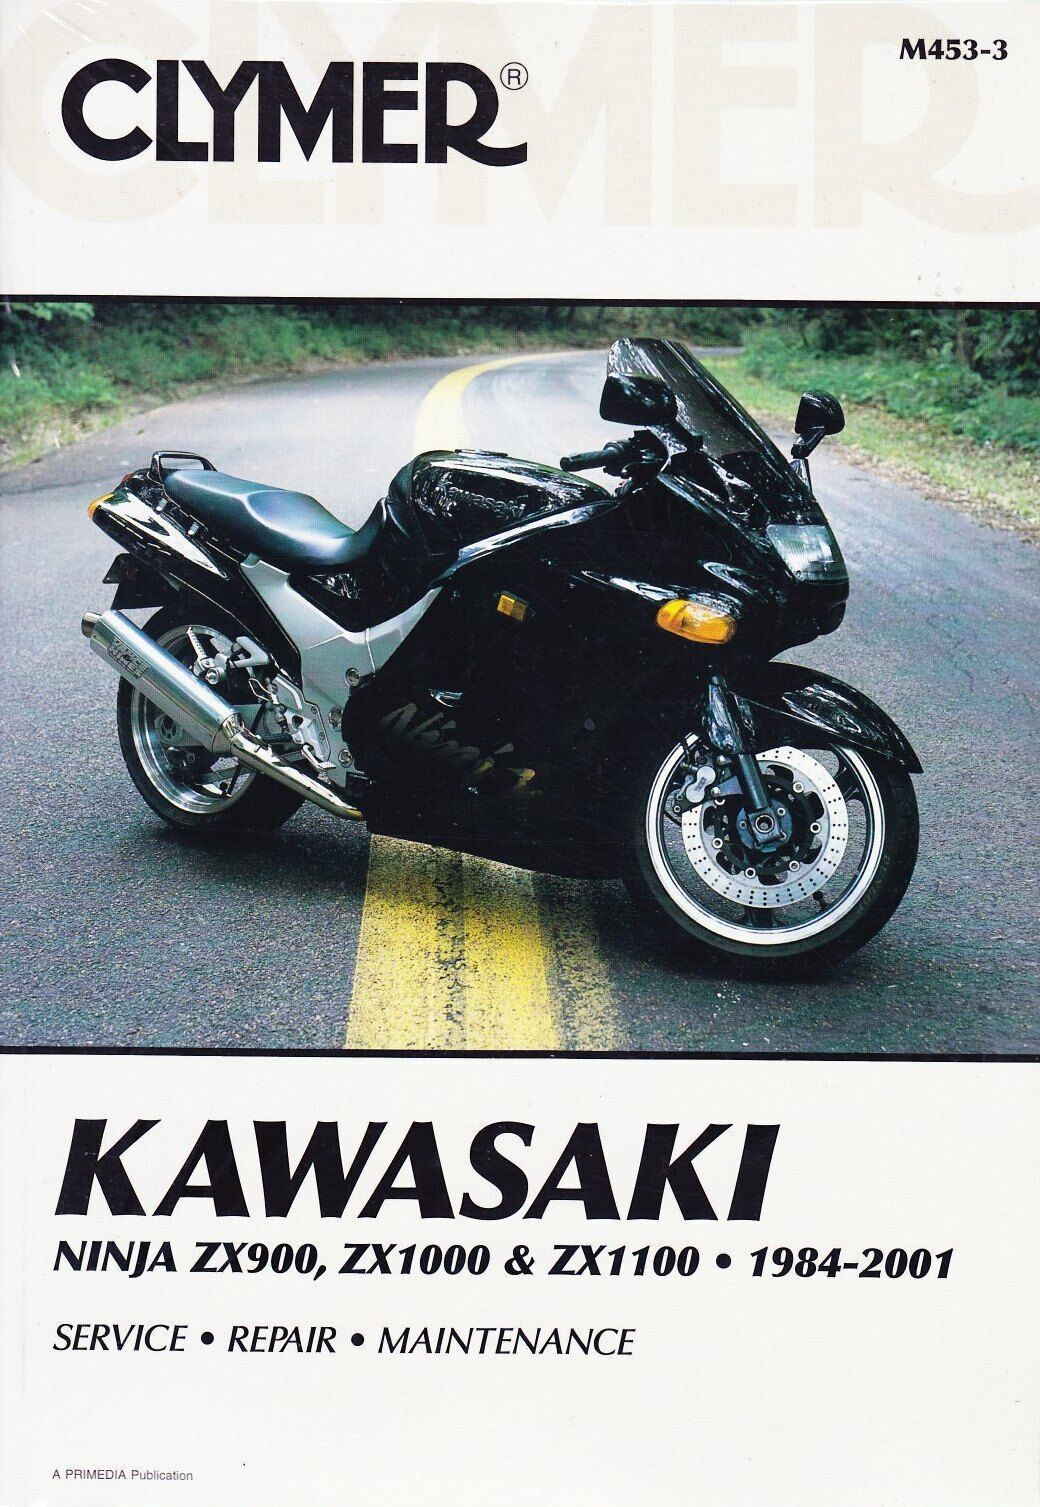 Clymer Workshop Service Repair Manual Kawasaki Ninja Zx900 Zx1000 Zx1100  84-01 1 of 1Only 1 available ...